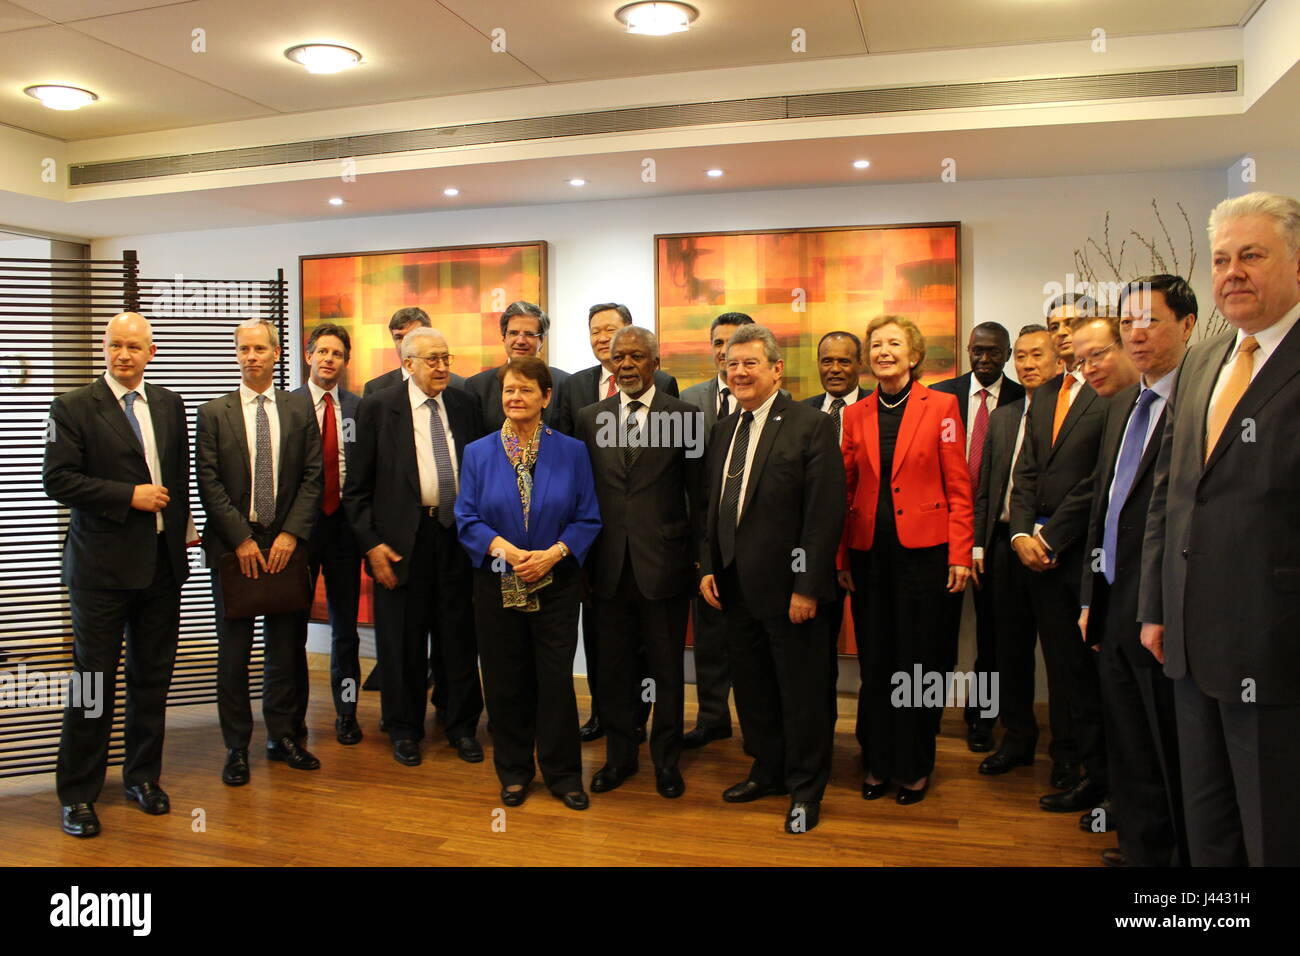 New York, USA. 9th May, 2017. Kofi Annan and fellow Elders Lakhdar Brahimi, Gro Harlem Brundtland and Mary Robinson Stock Photo